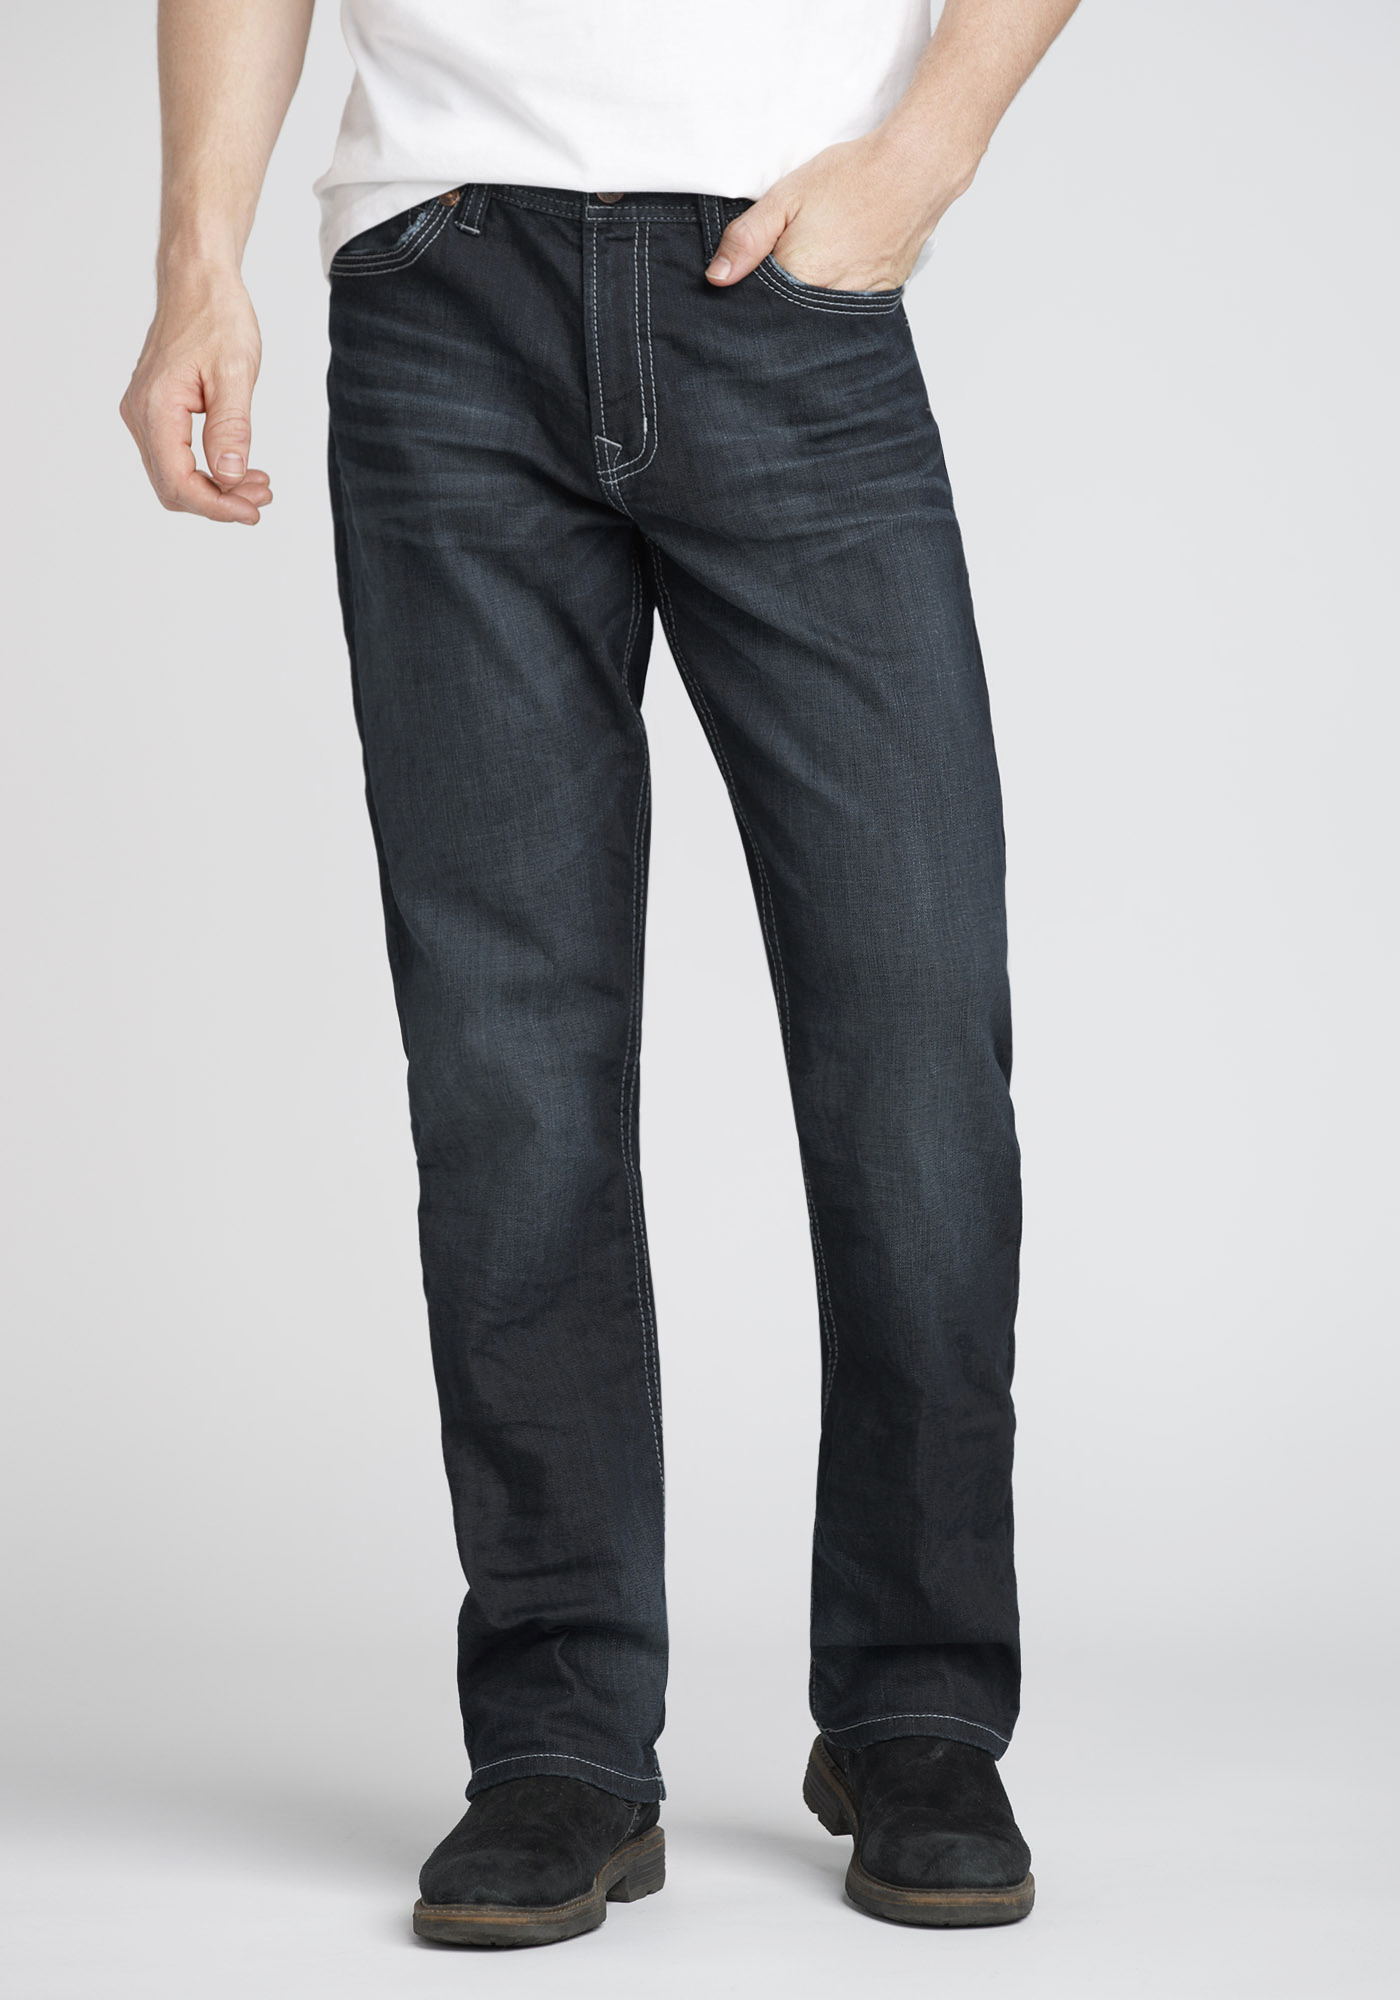 Mens Jeans Warehouse